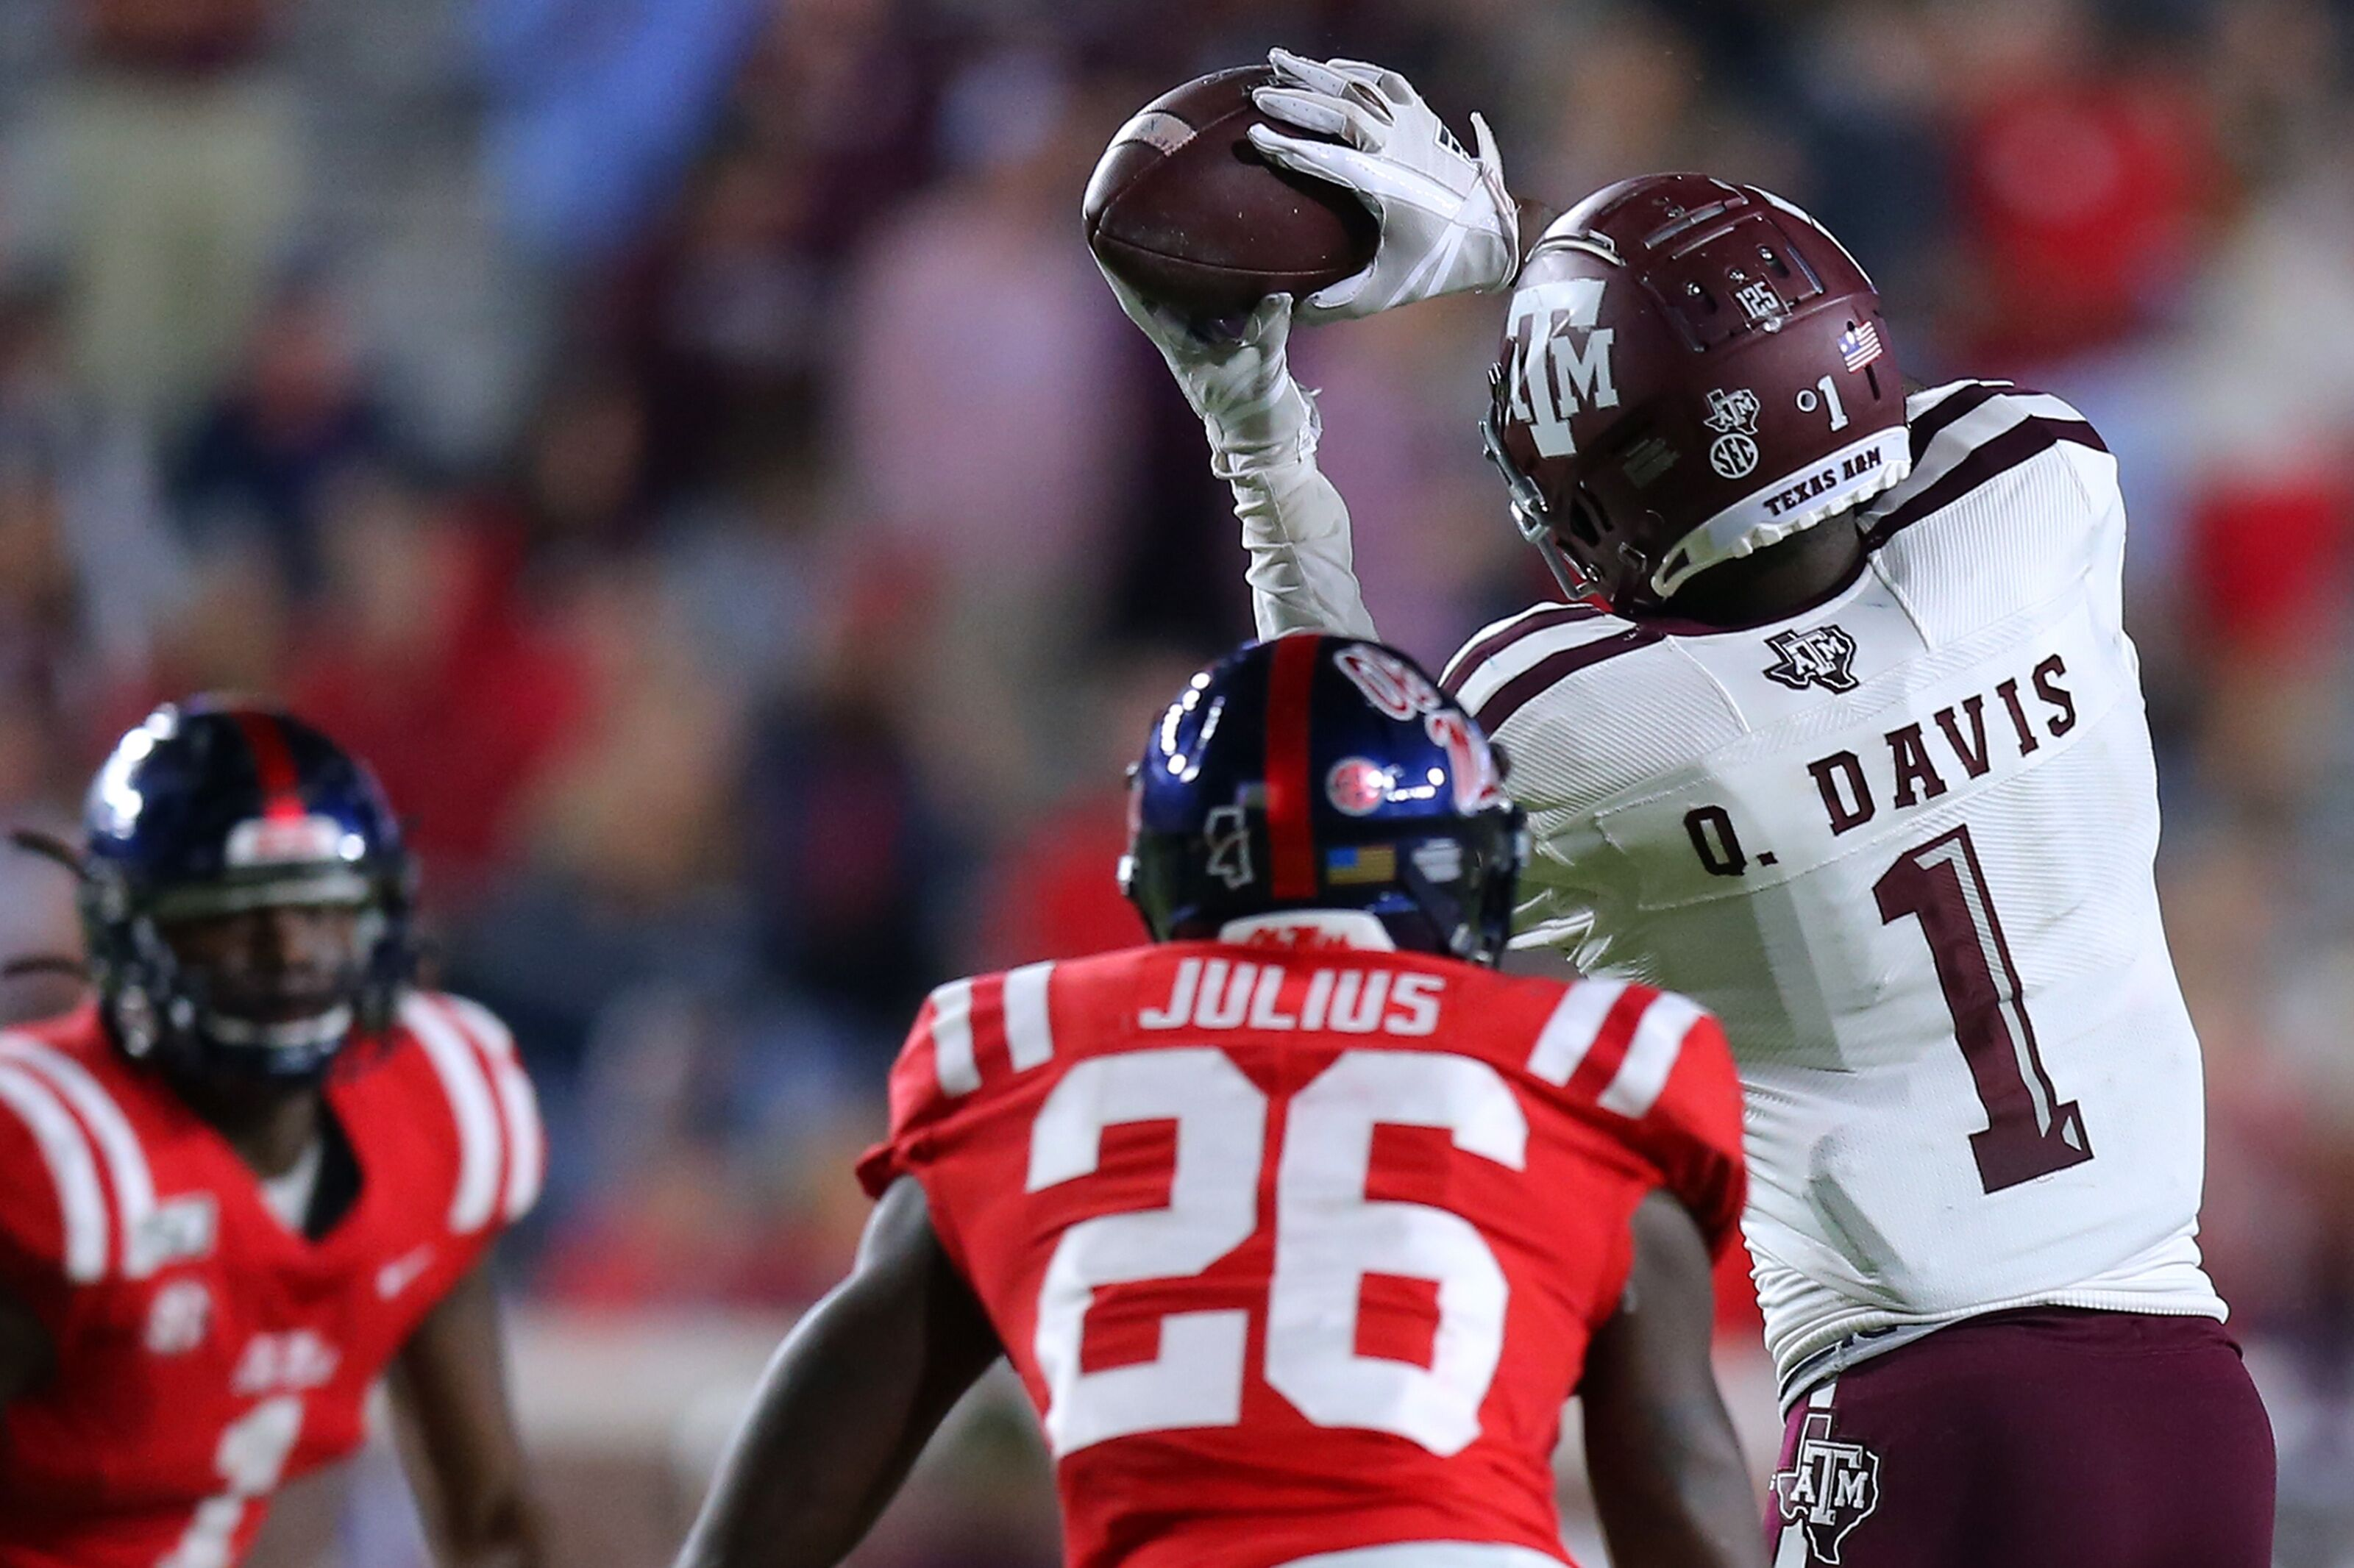 Texas A&M Football: 3 quick takeaways from win over Ole Miss